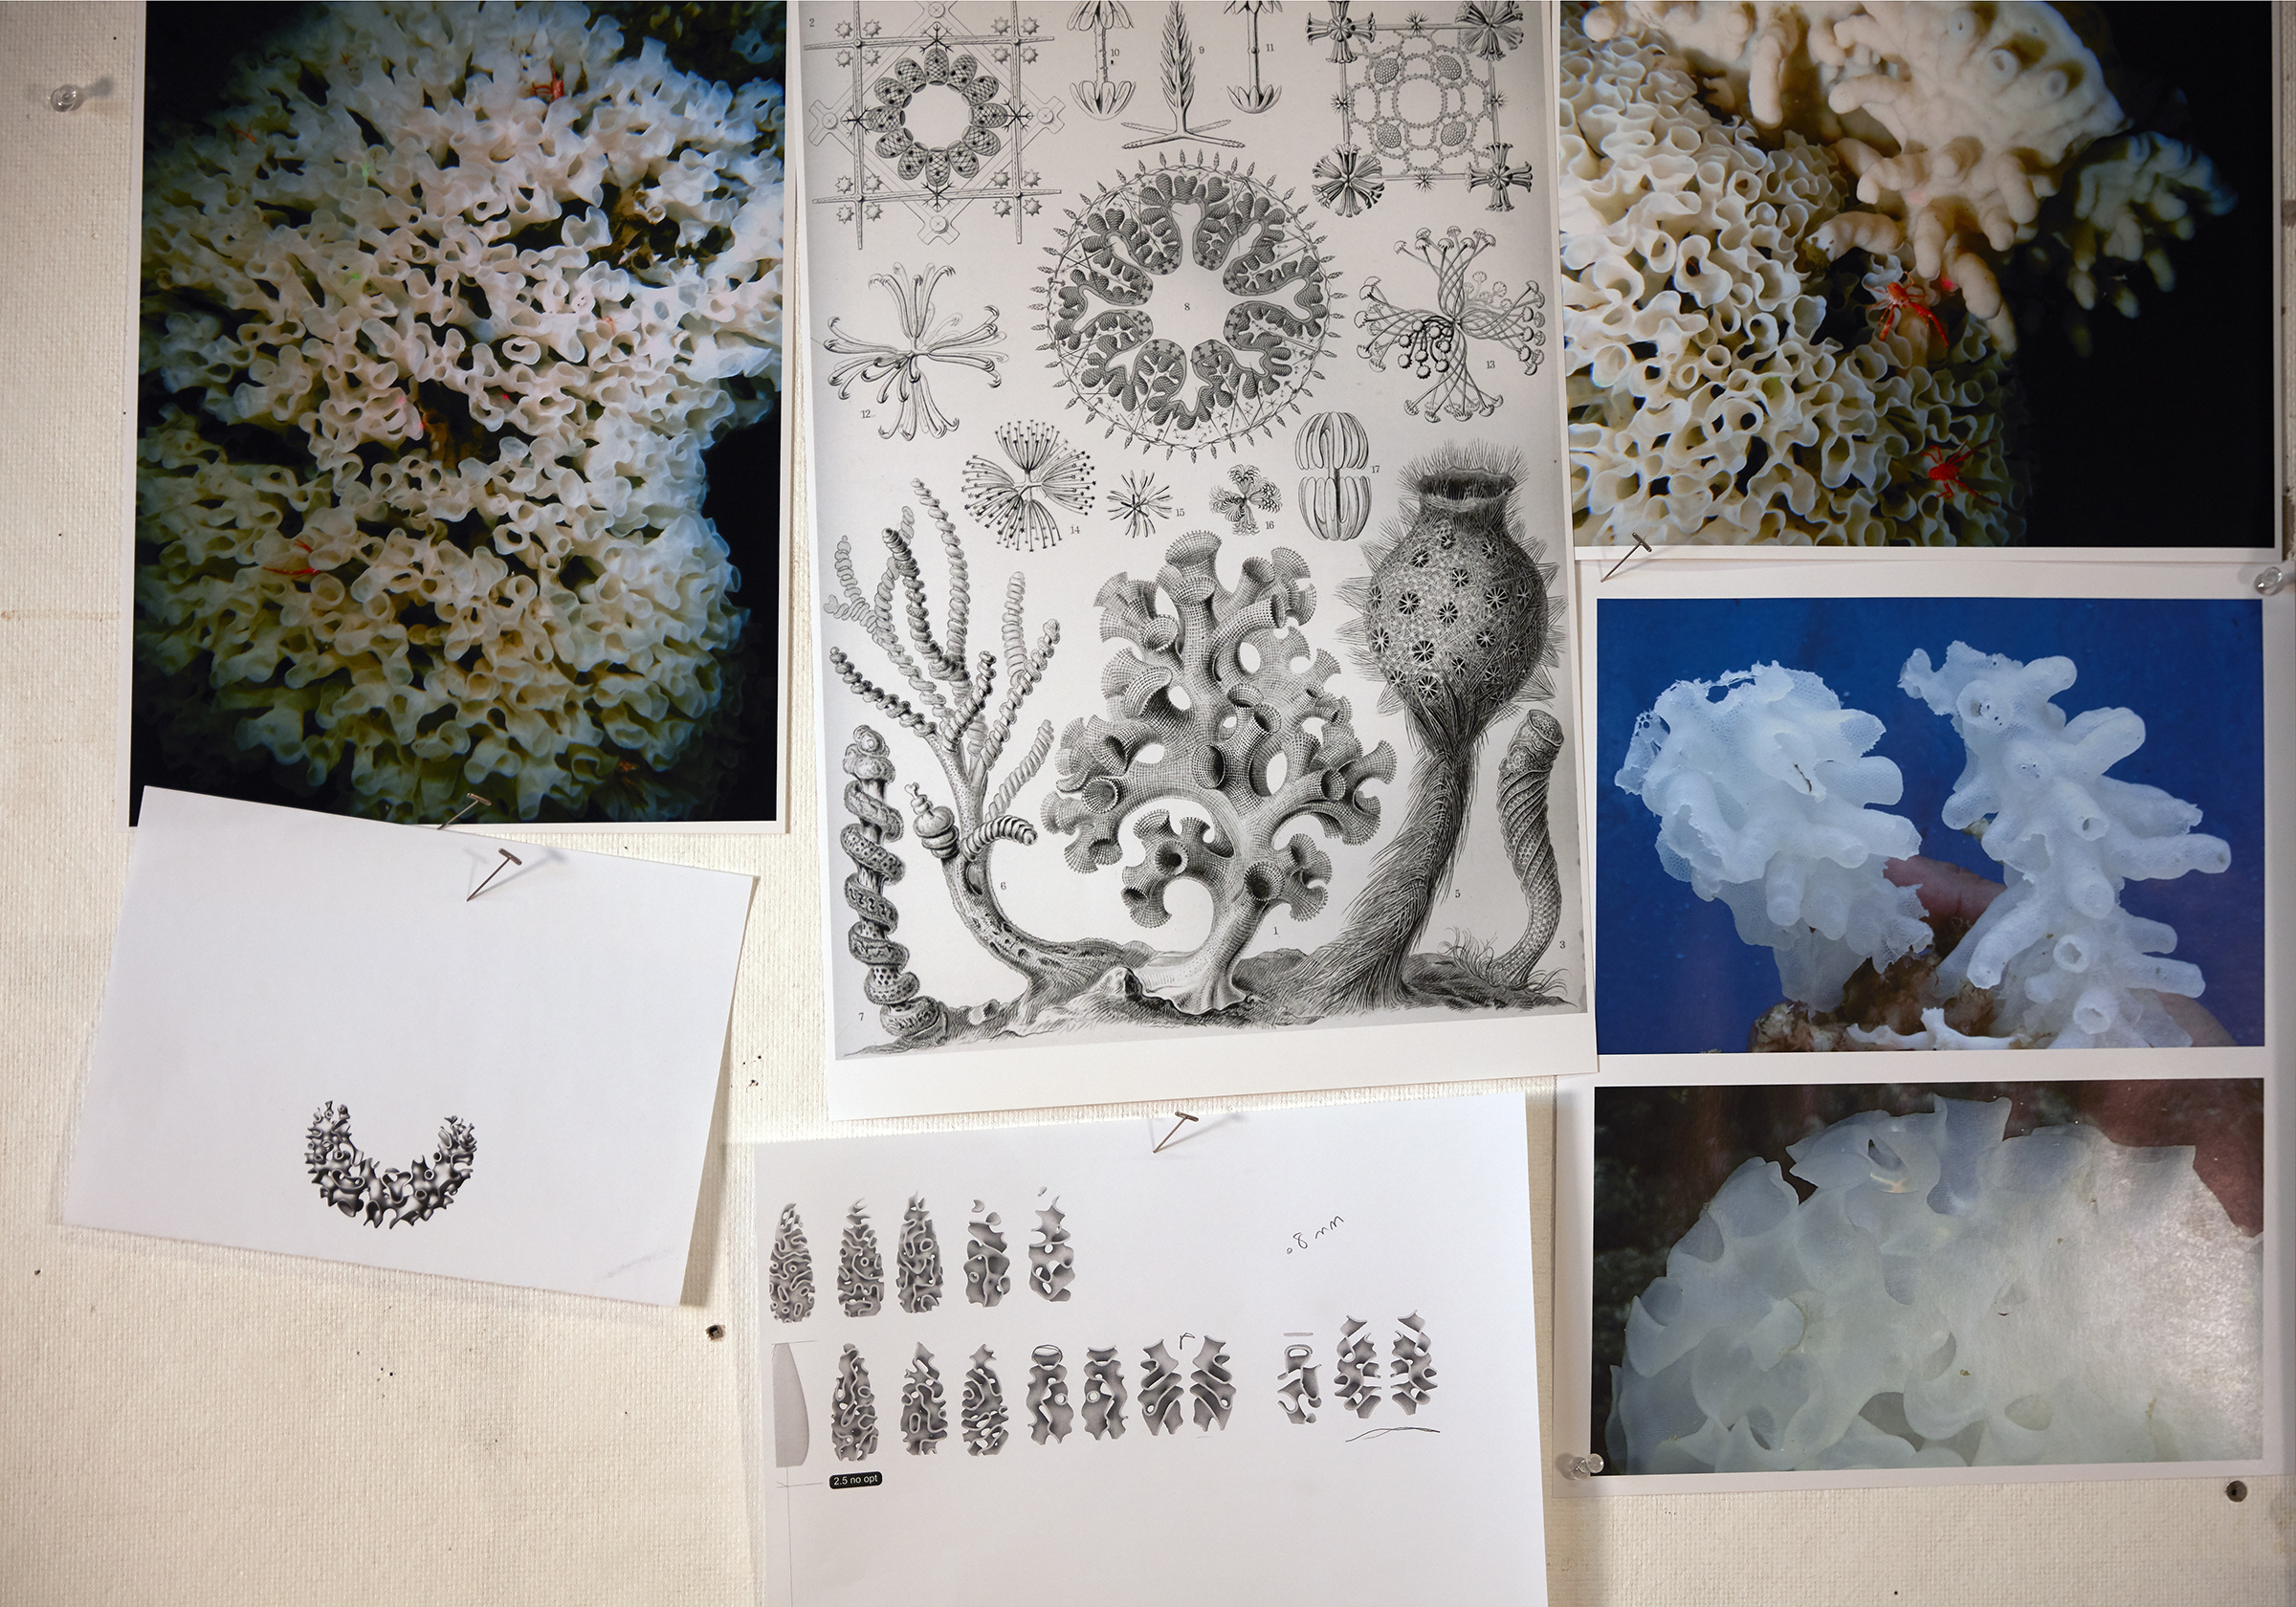 Images of deep sea sponders and drawings of jewelry concepts on the wall at the Nervous System studio.